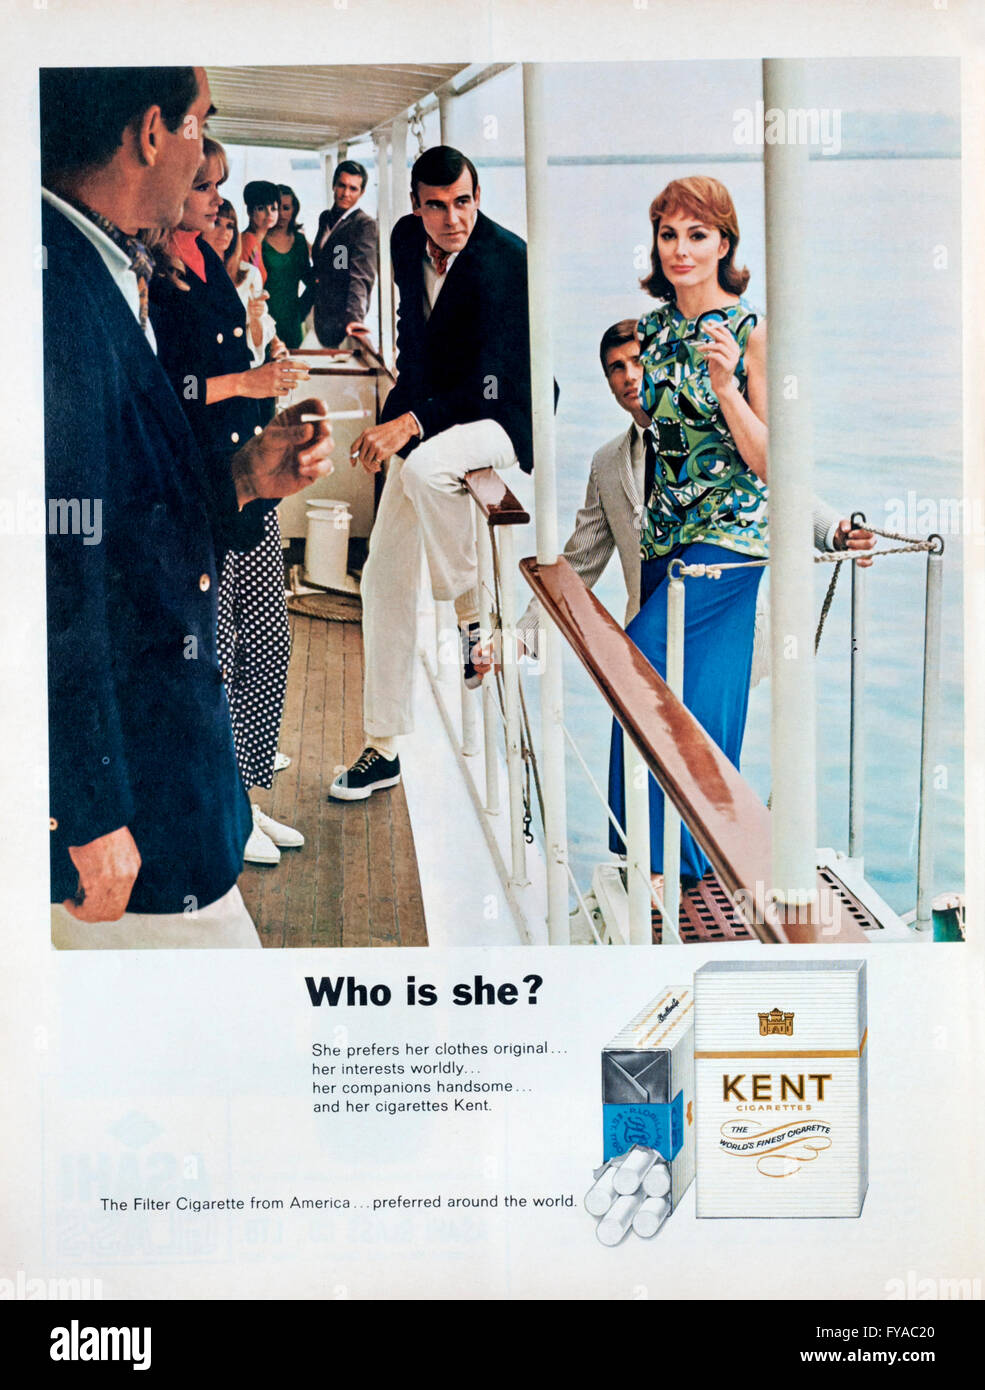 1960s magazine advertisement advertising Kent cigarettes. - Stock Image